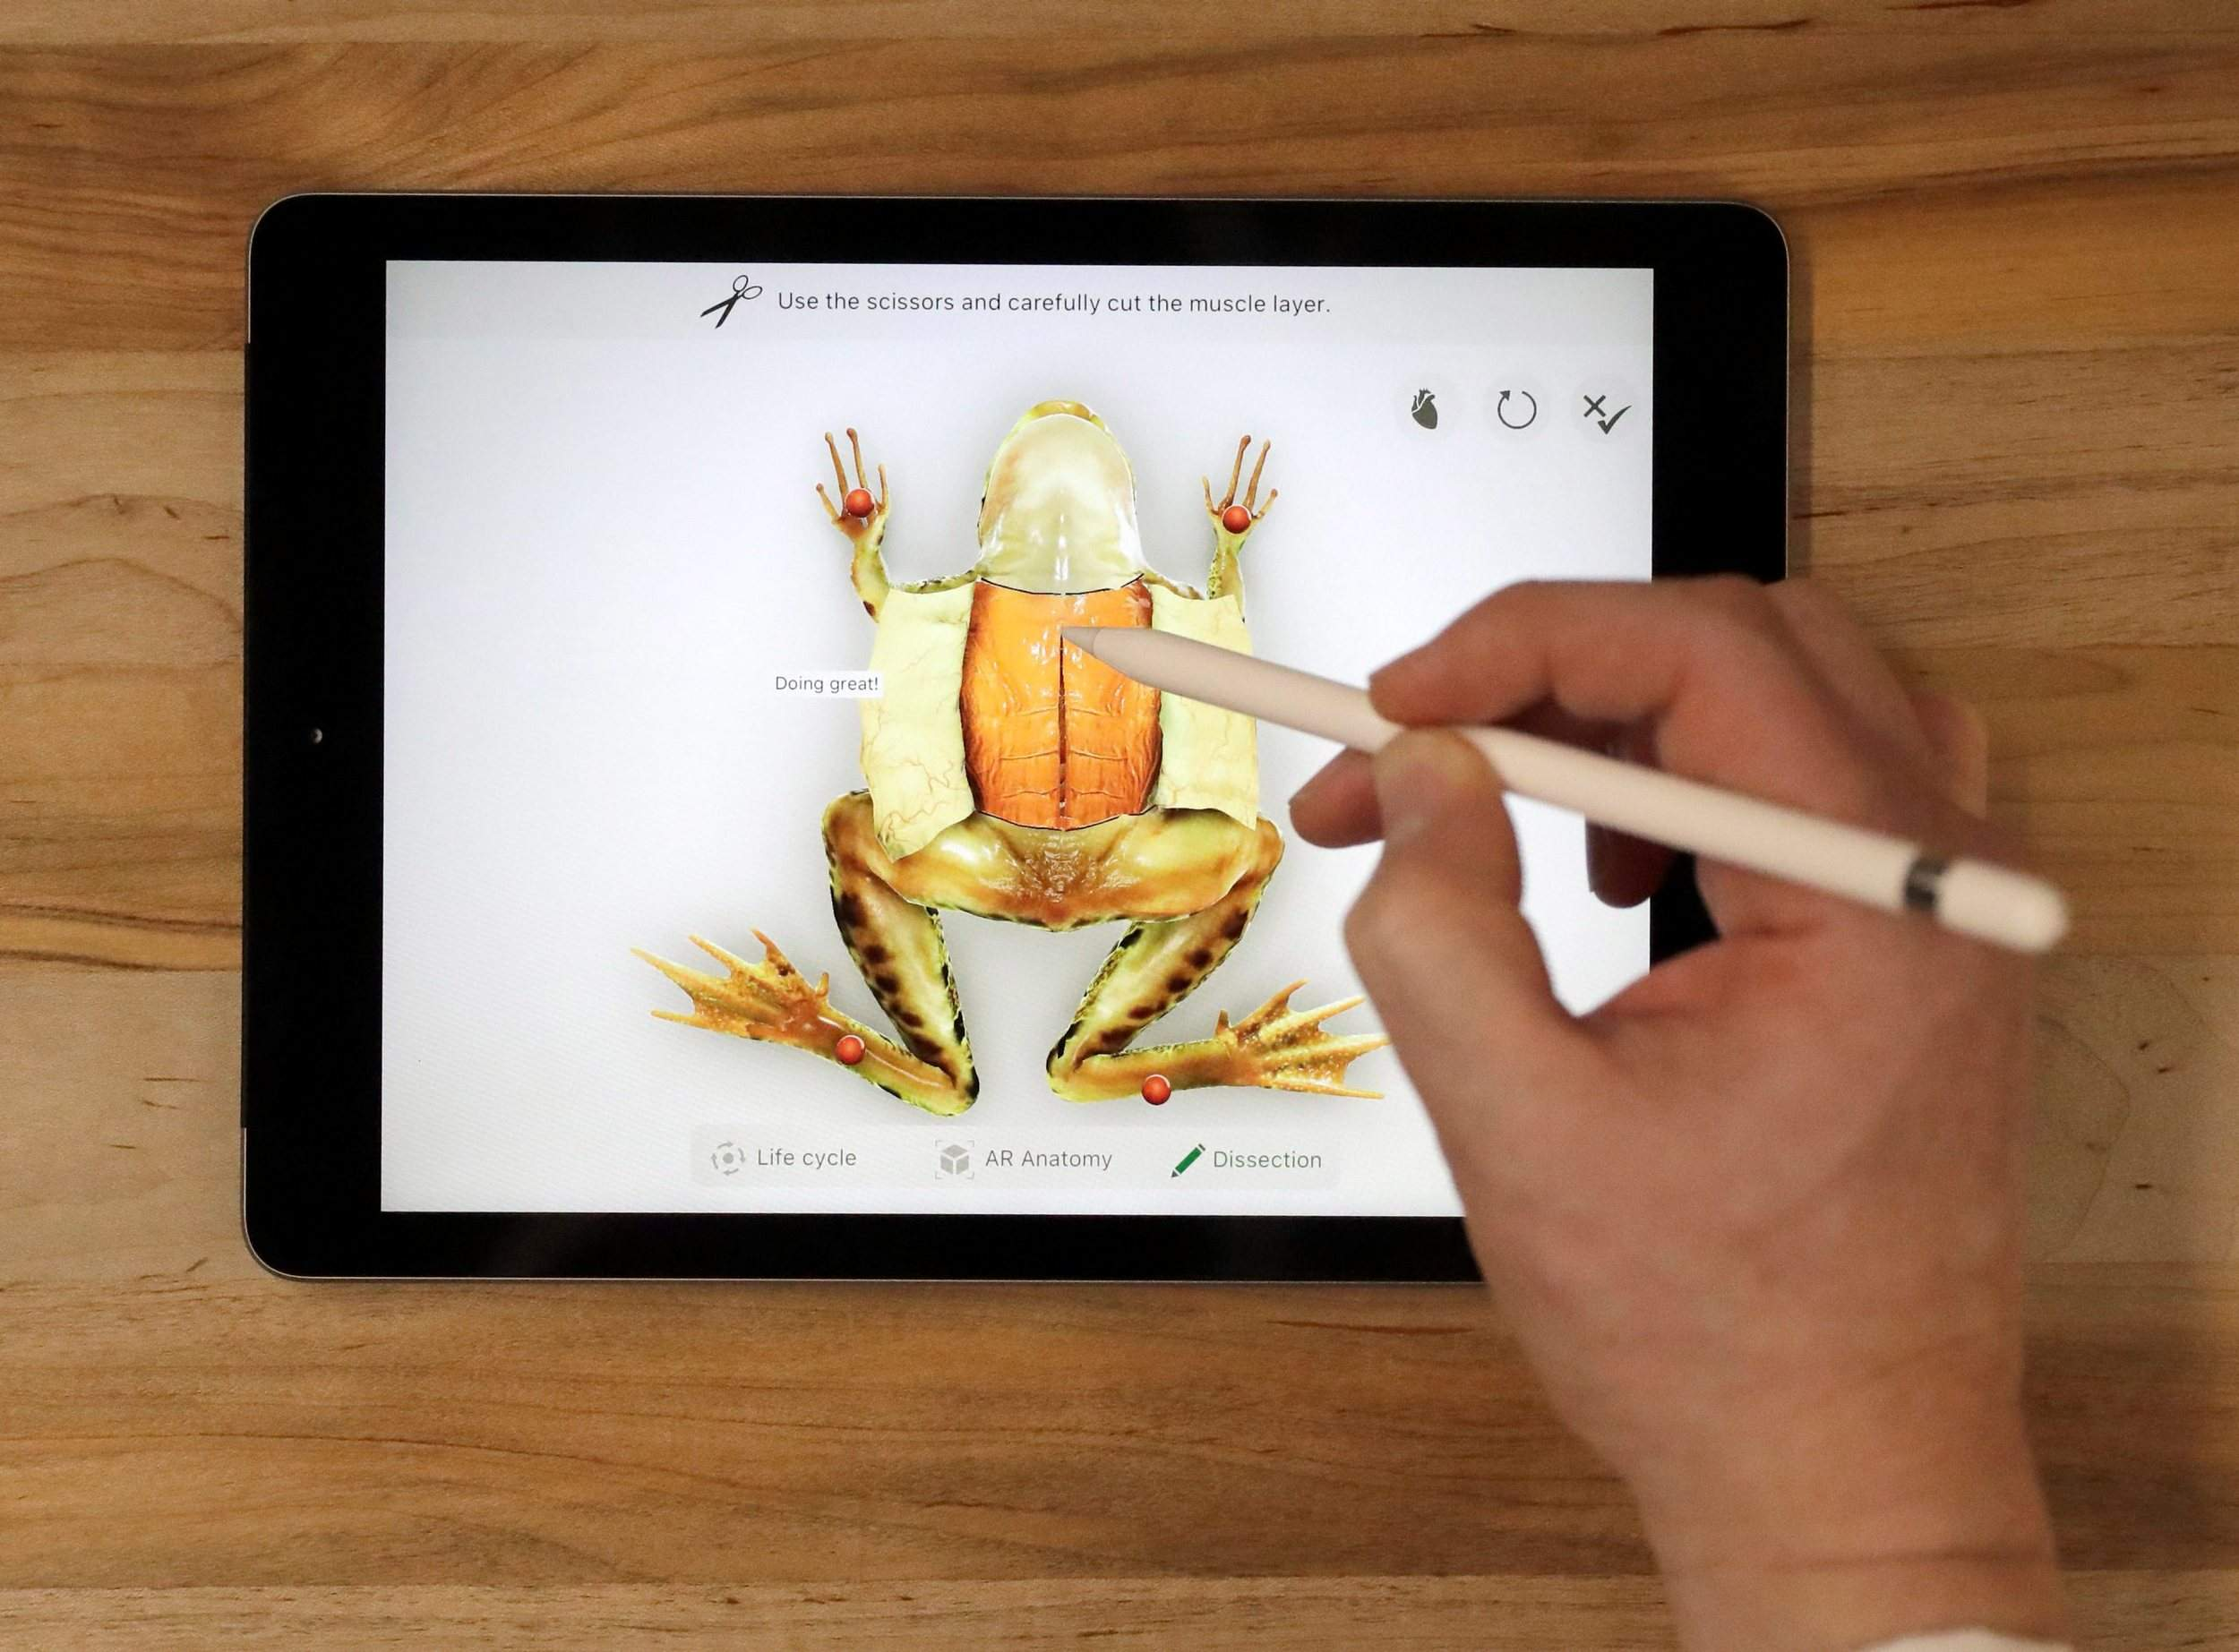 Virtual dissection of a frog on an Ipad